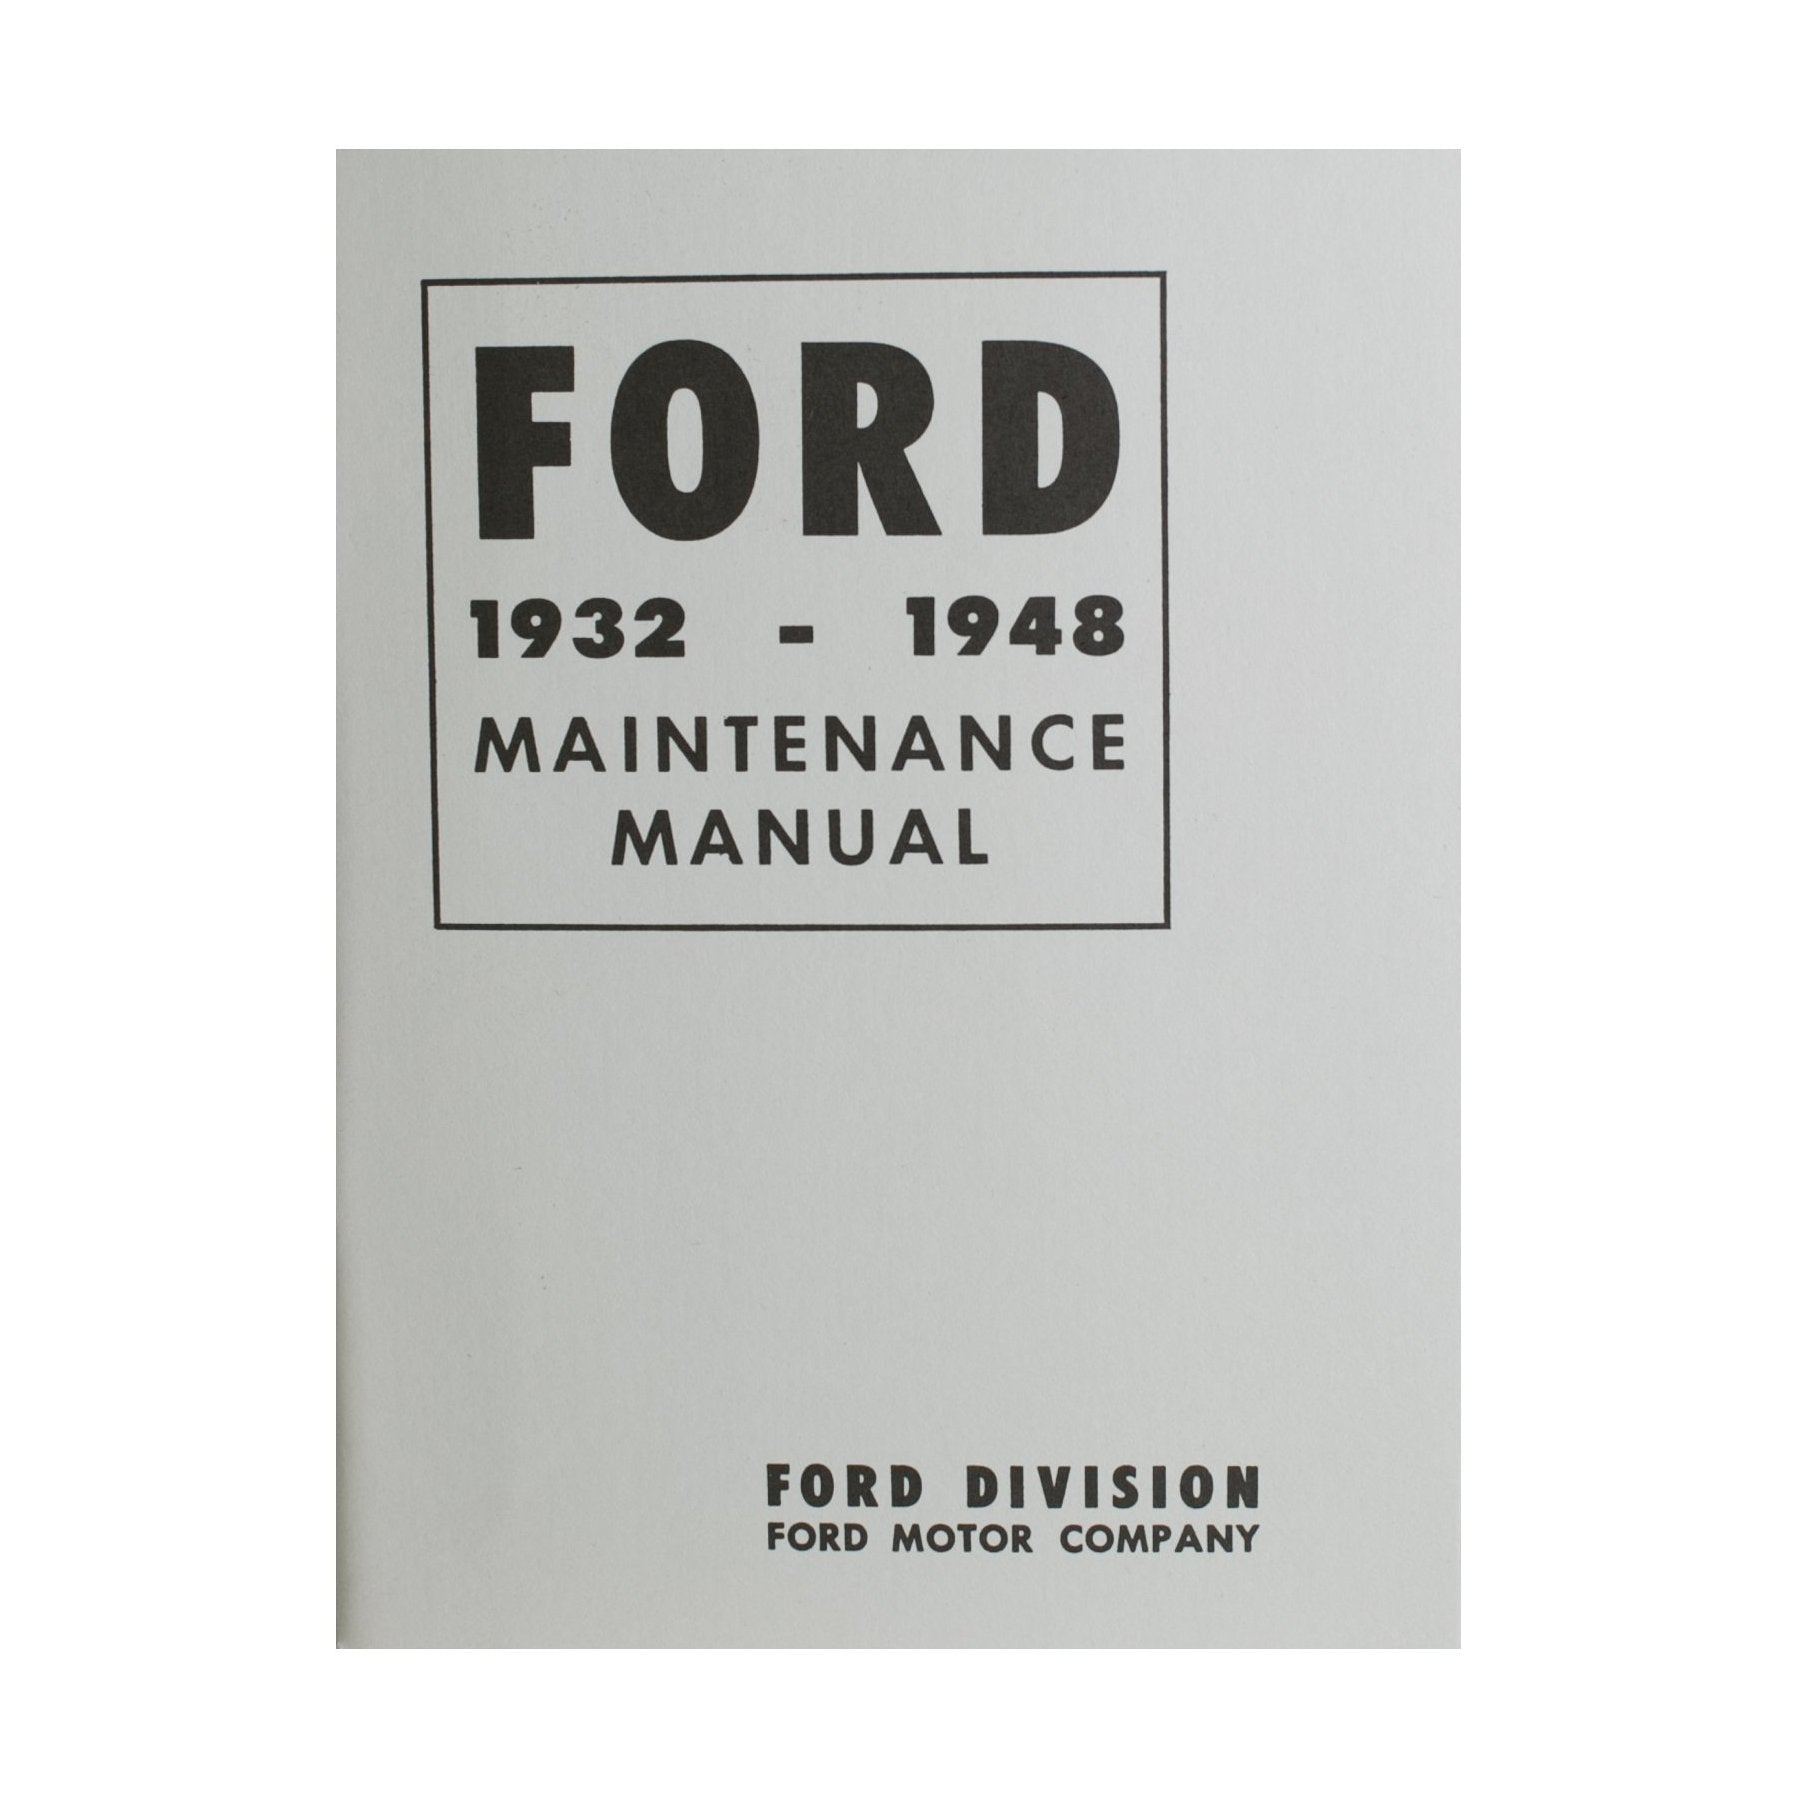 Ford Maintenance Manual